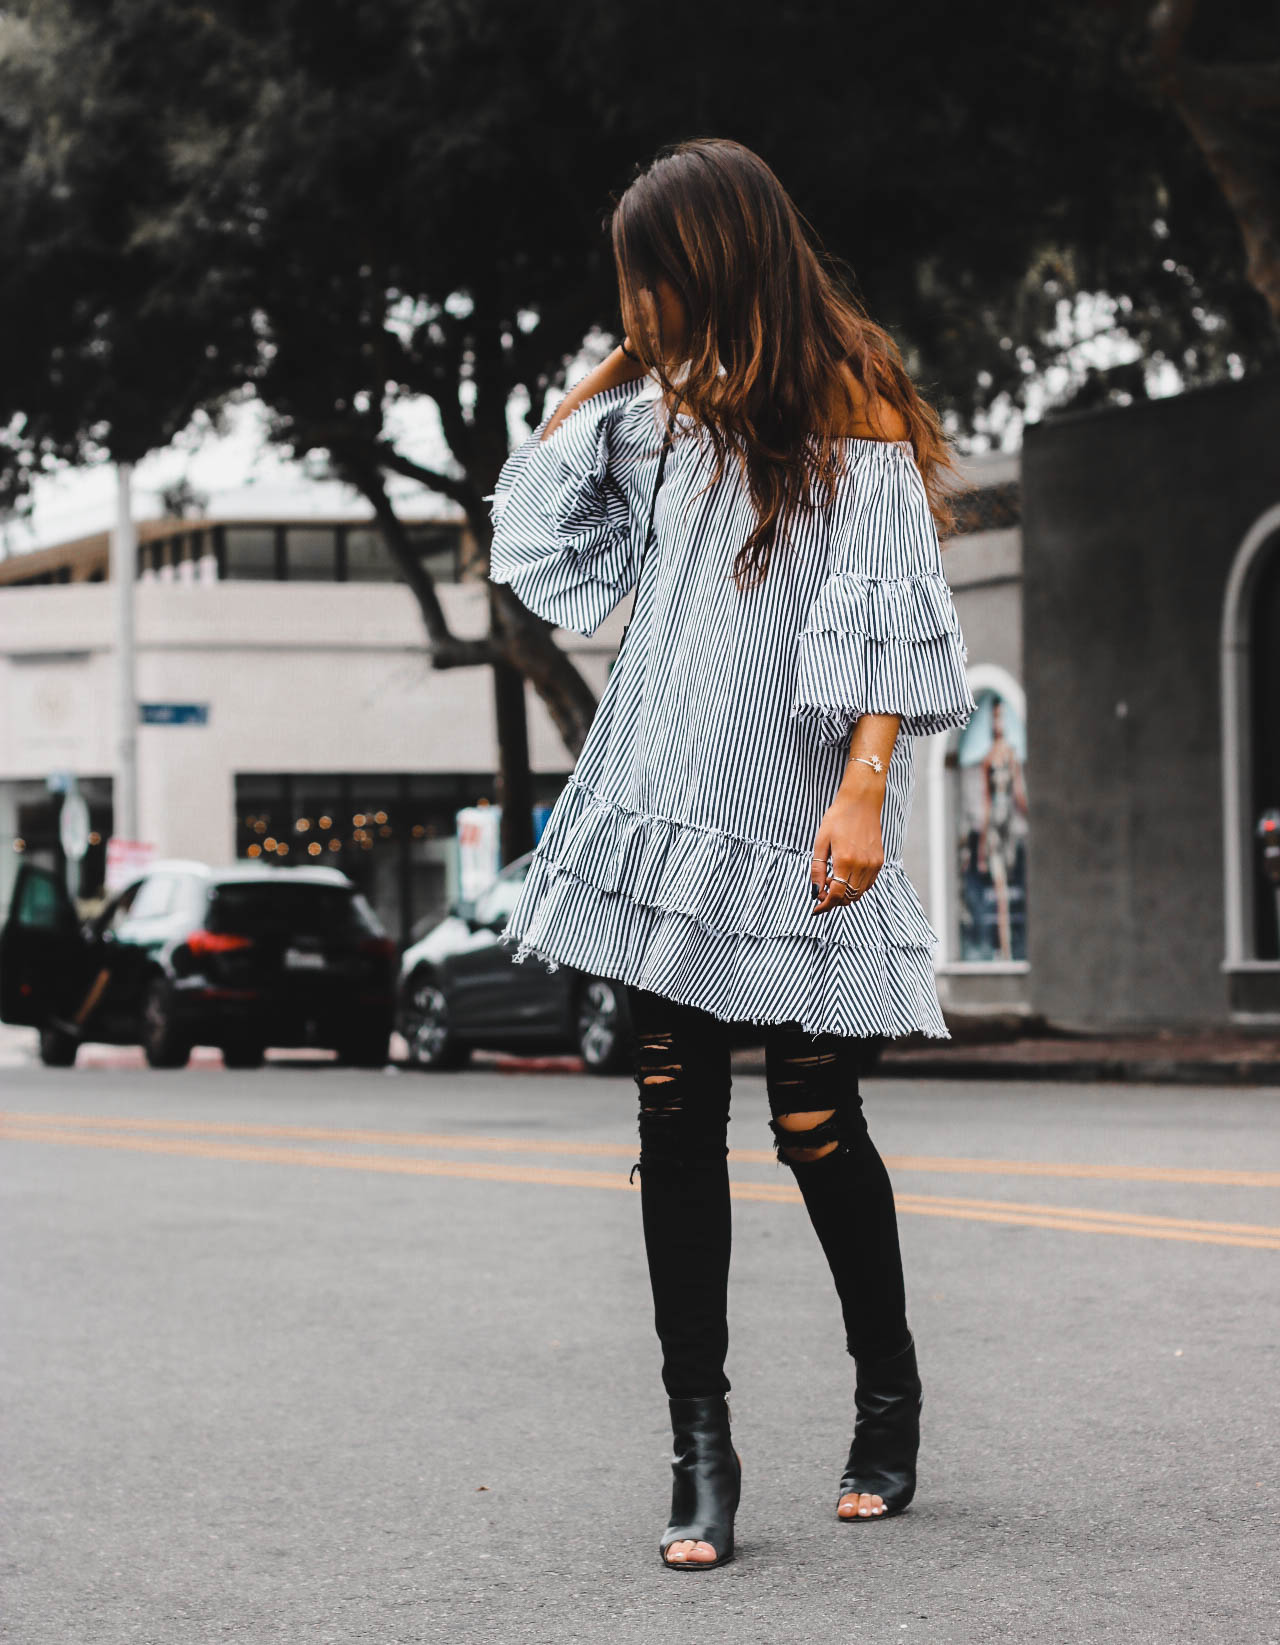 street style photo of style blogger jami alix wearing striped ruffle dress by Zara, summer ootd